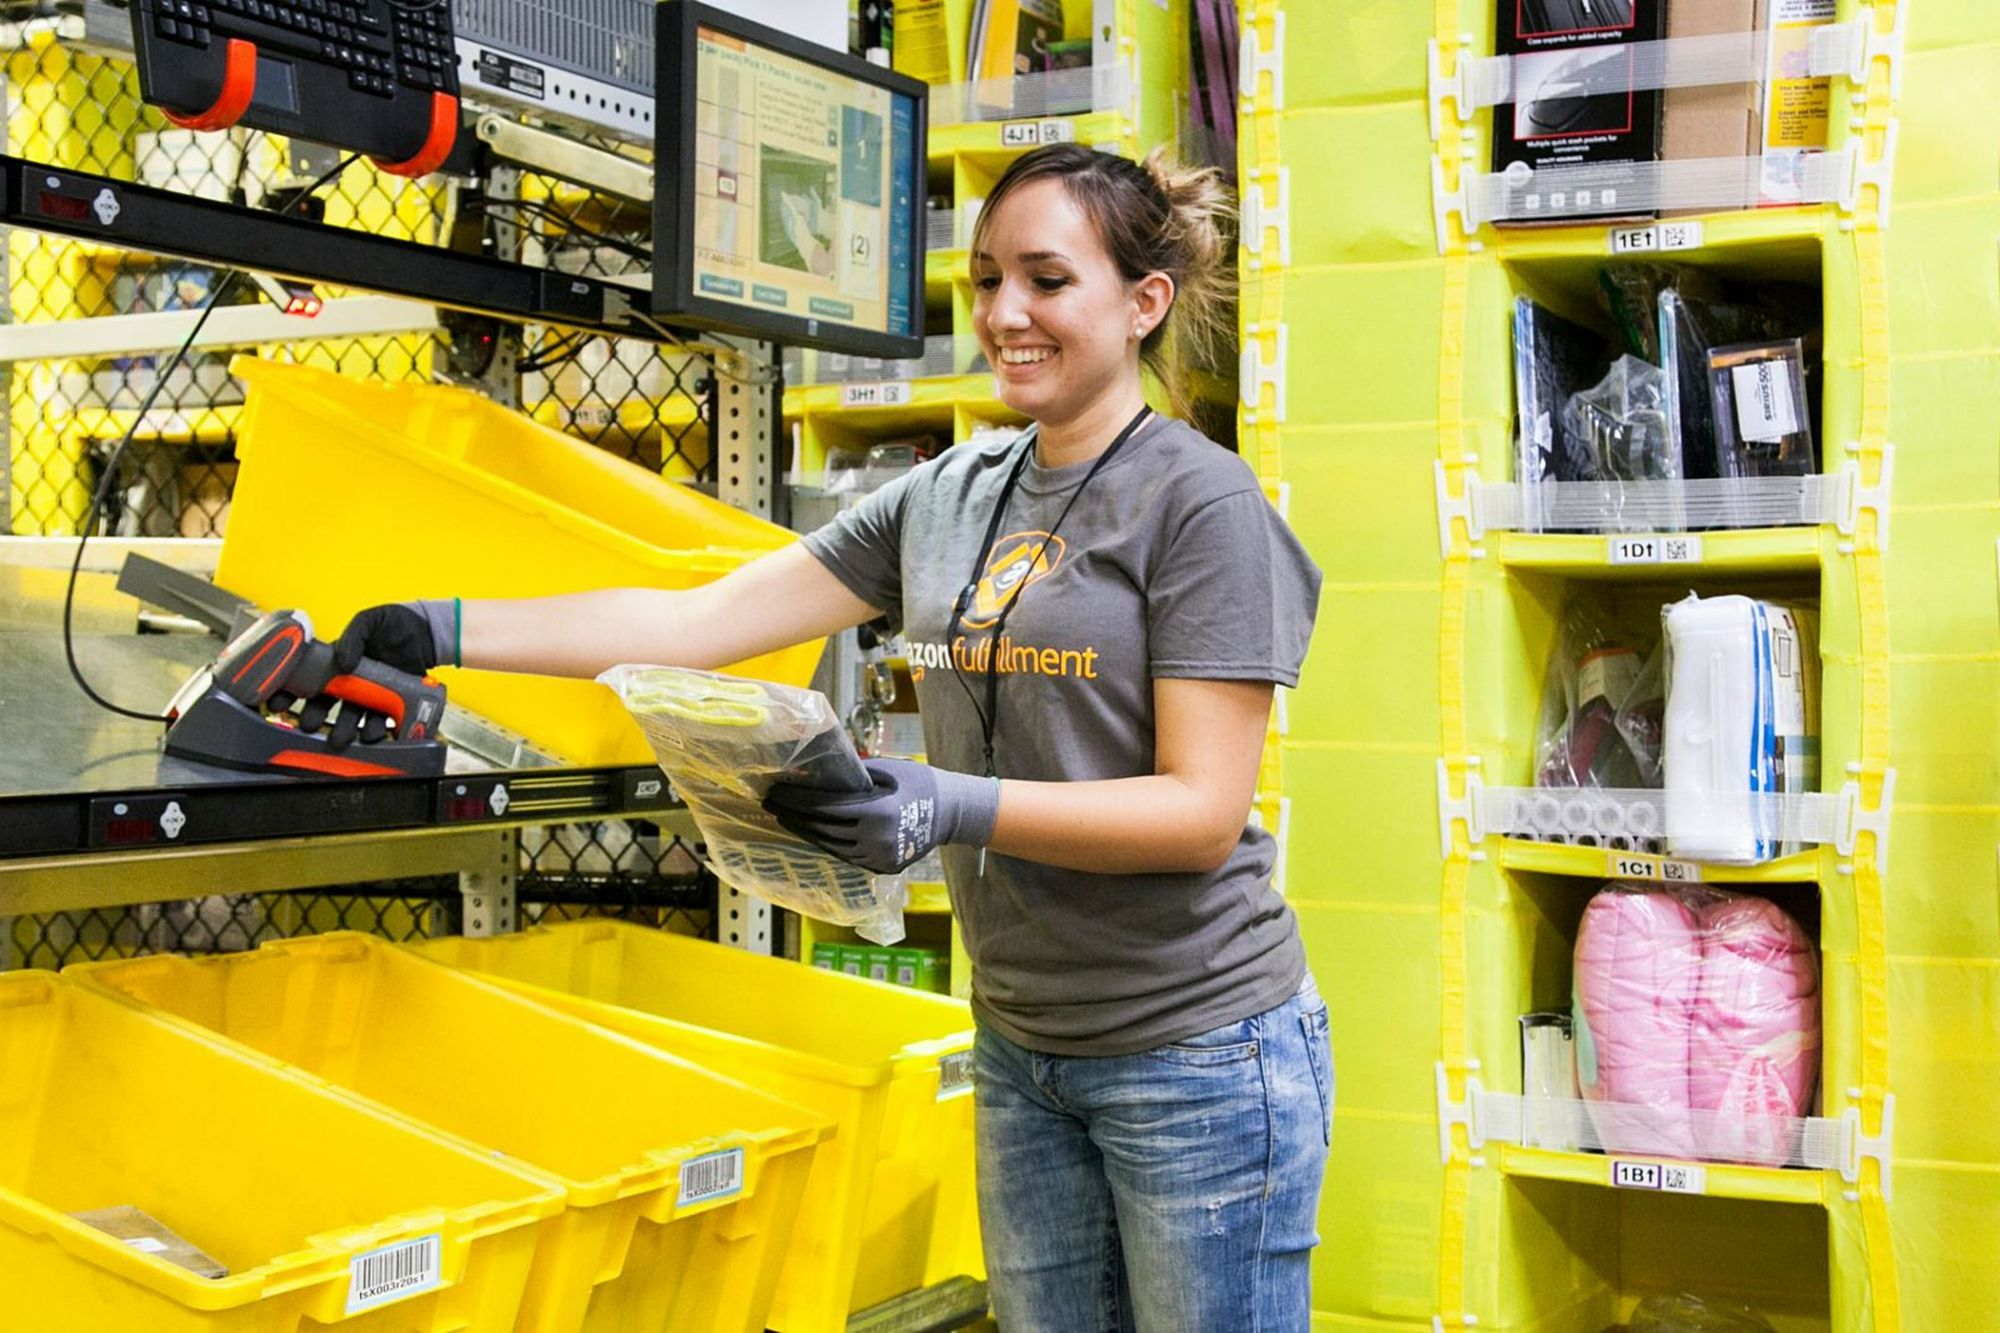 Amazon to Invest $700 Million to Retrain 100,000 Workers for New Jobs